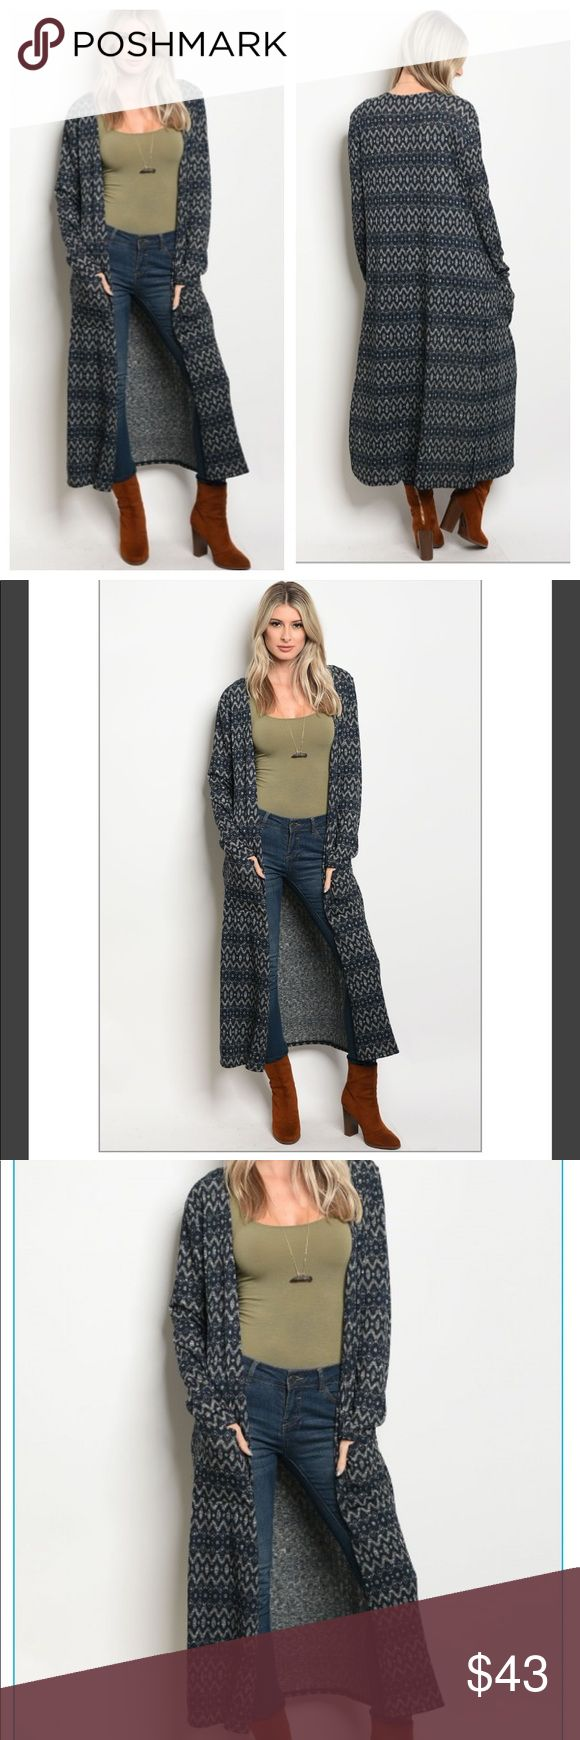 "NEW !! Navy and gray Duster Cardigan NWT! Navy and gray Long cardigan. 2 front pockets. Has a boho look with an easy flow. Features side-slit for easy movability. Lightweight . I'm 5'3"" in the first pic. Boutique Sweaters Cardigans"